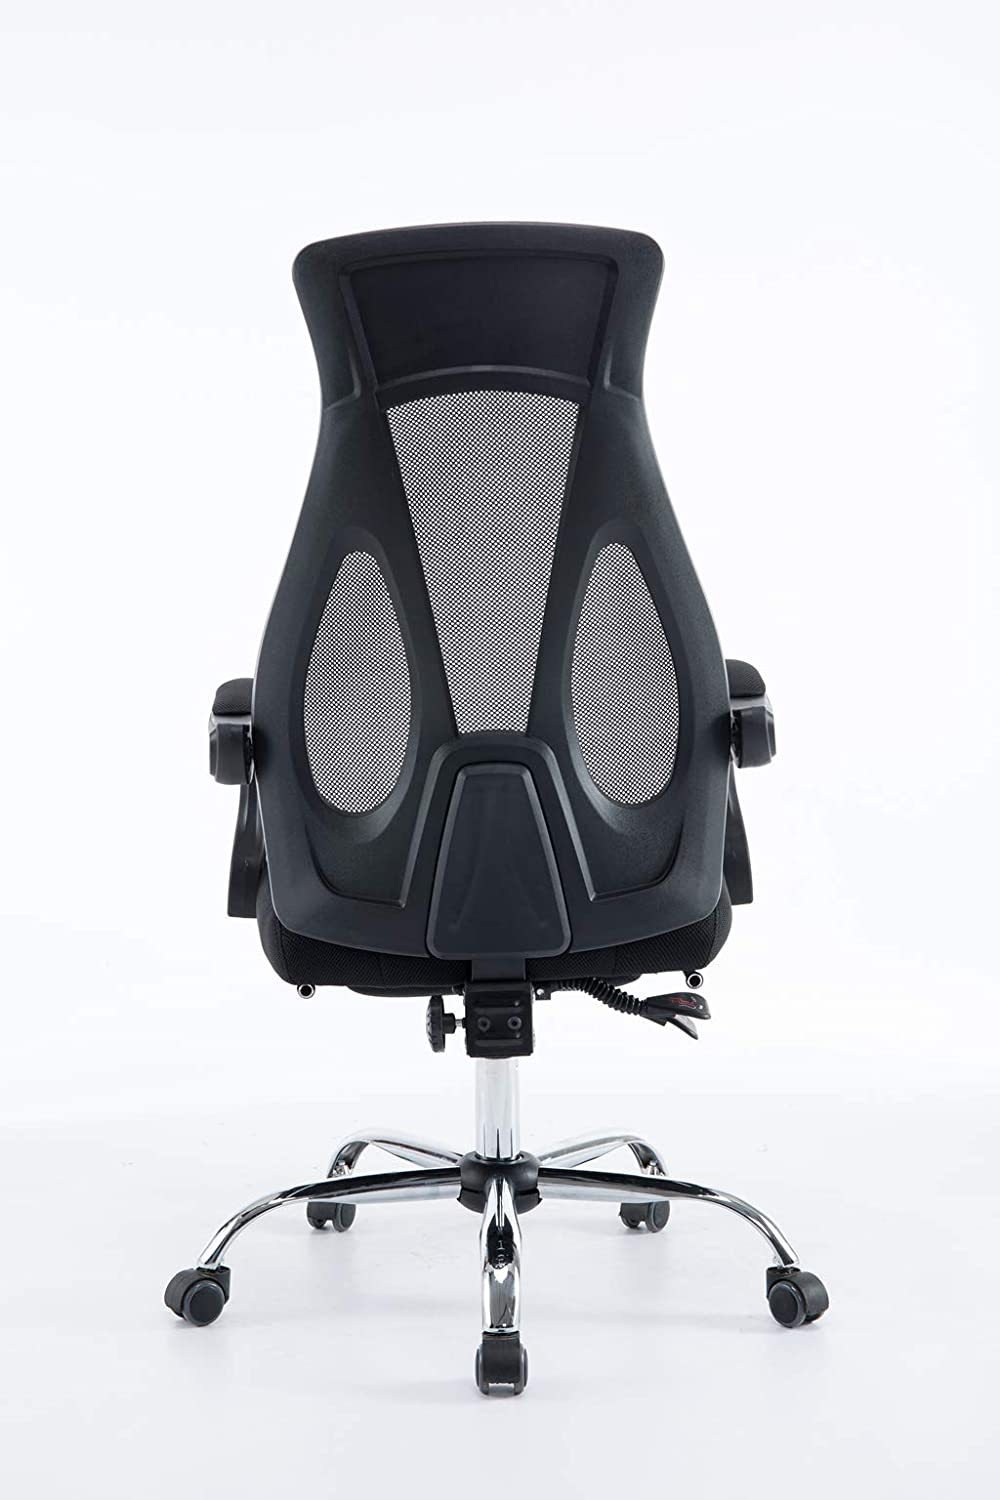 Ergonomic Office Chair 155/° Reclining Computer Chair Headrest High Back Mesh Black-Thick Seat Cushion-Foot Rest